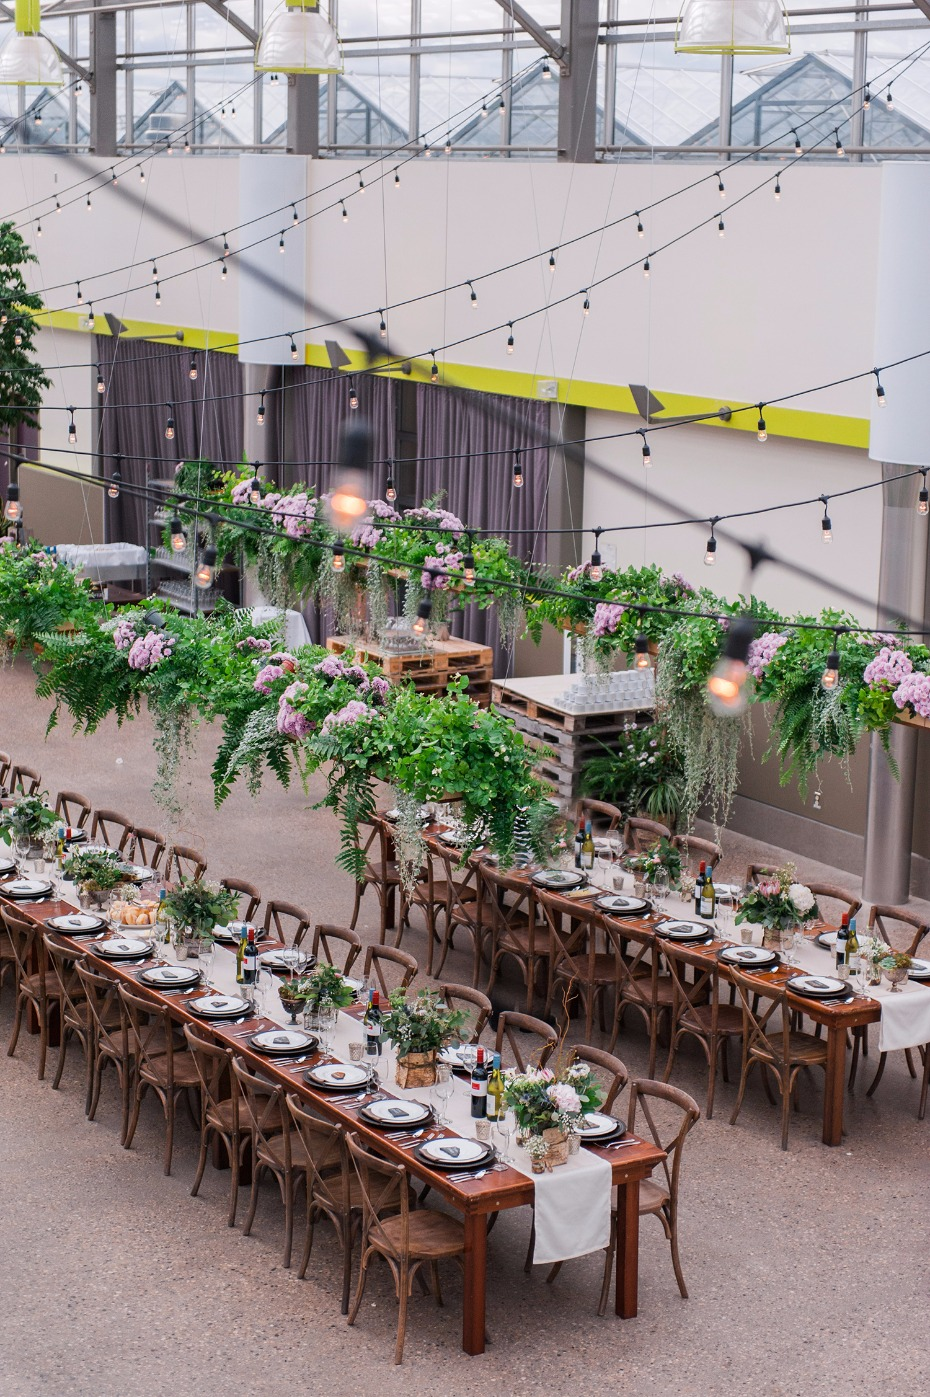 Greenery-filled green house wedding